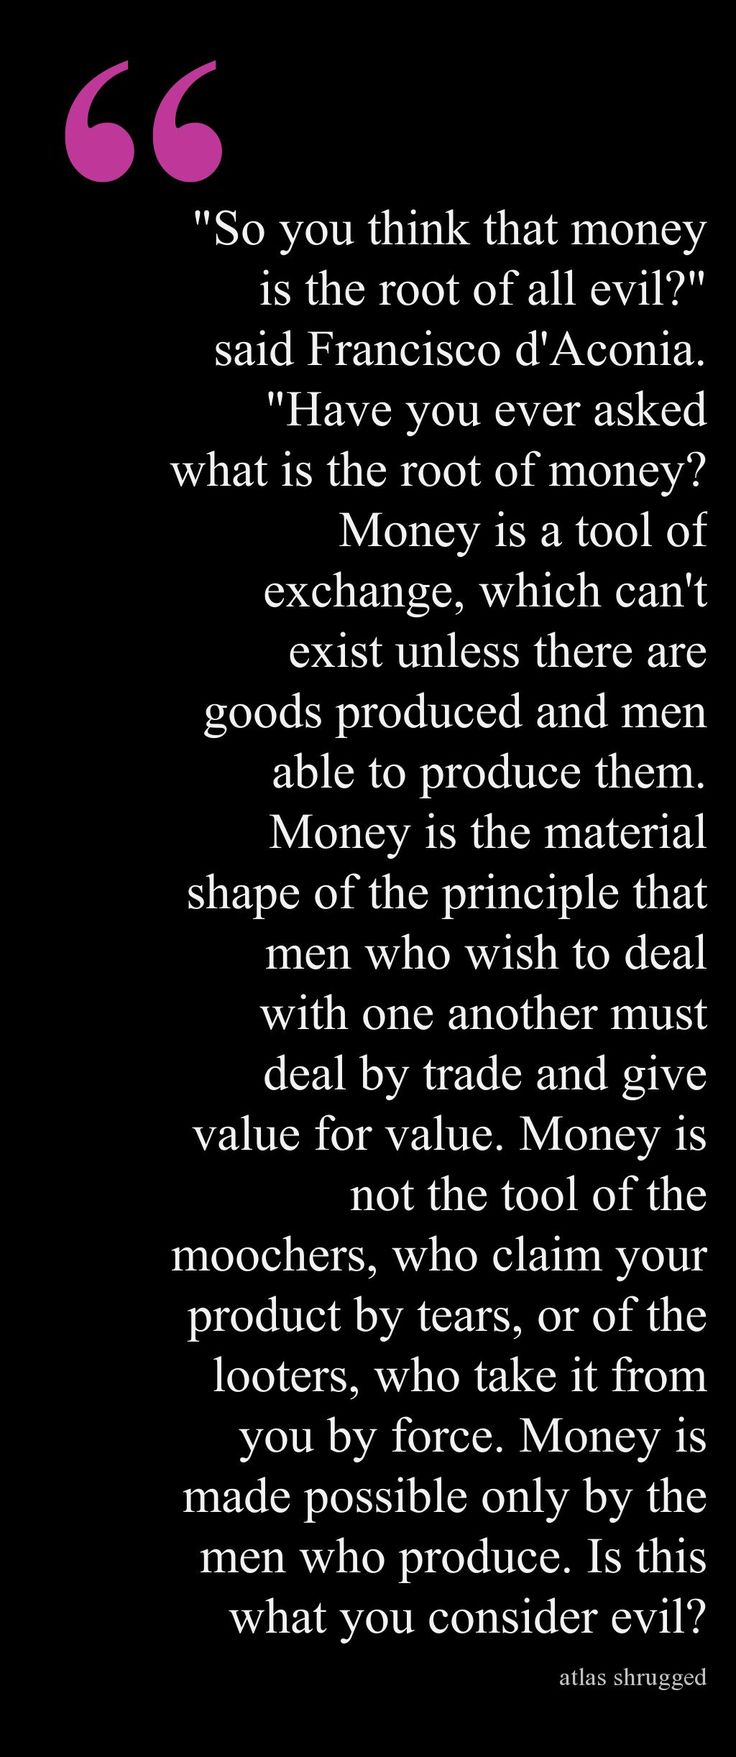 Atlas Shrugged Quotes: The Money Speech from Atlas Shrugged